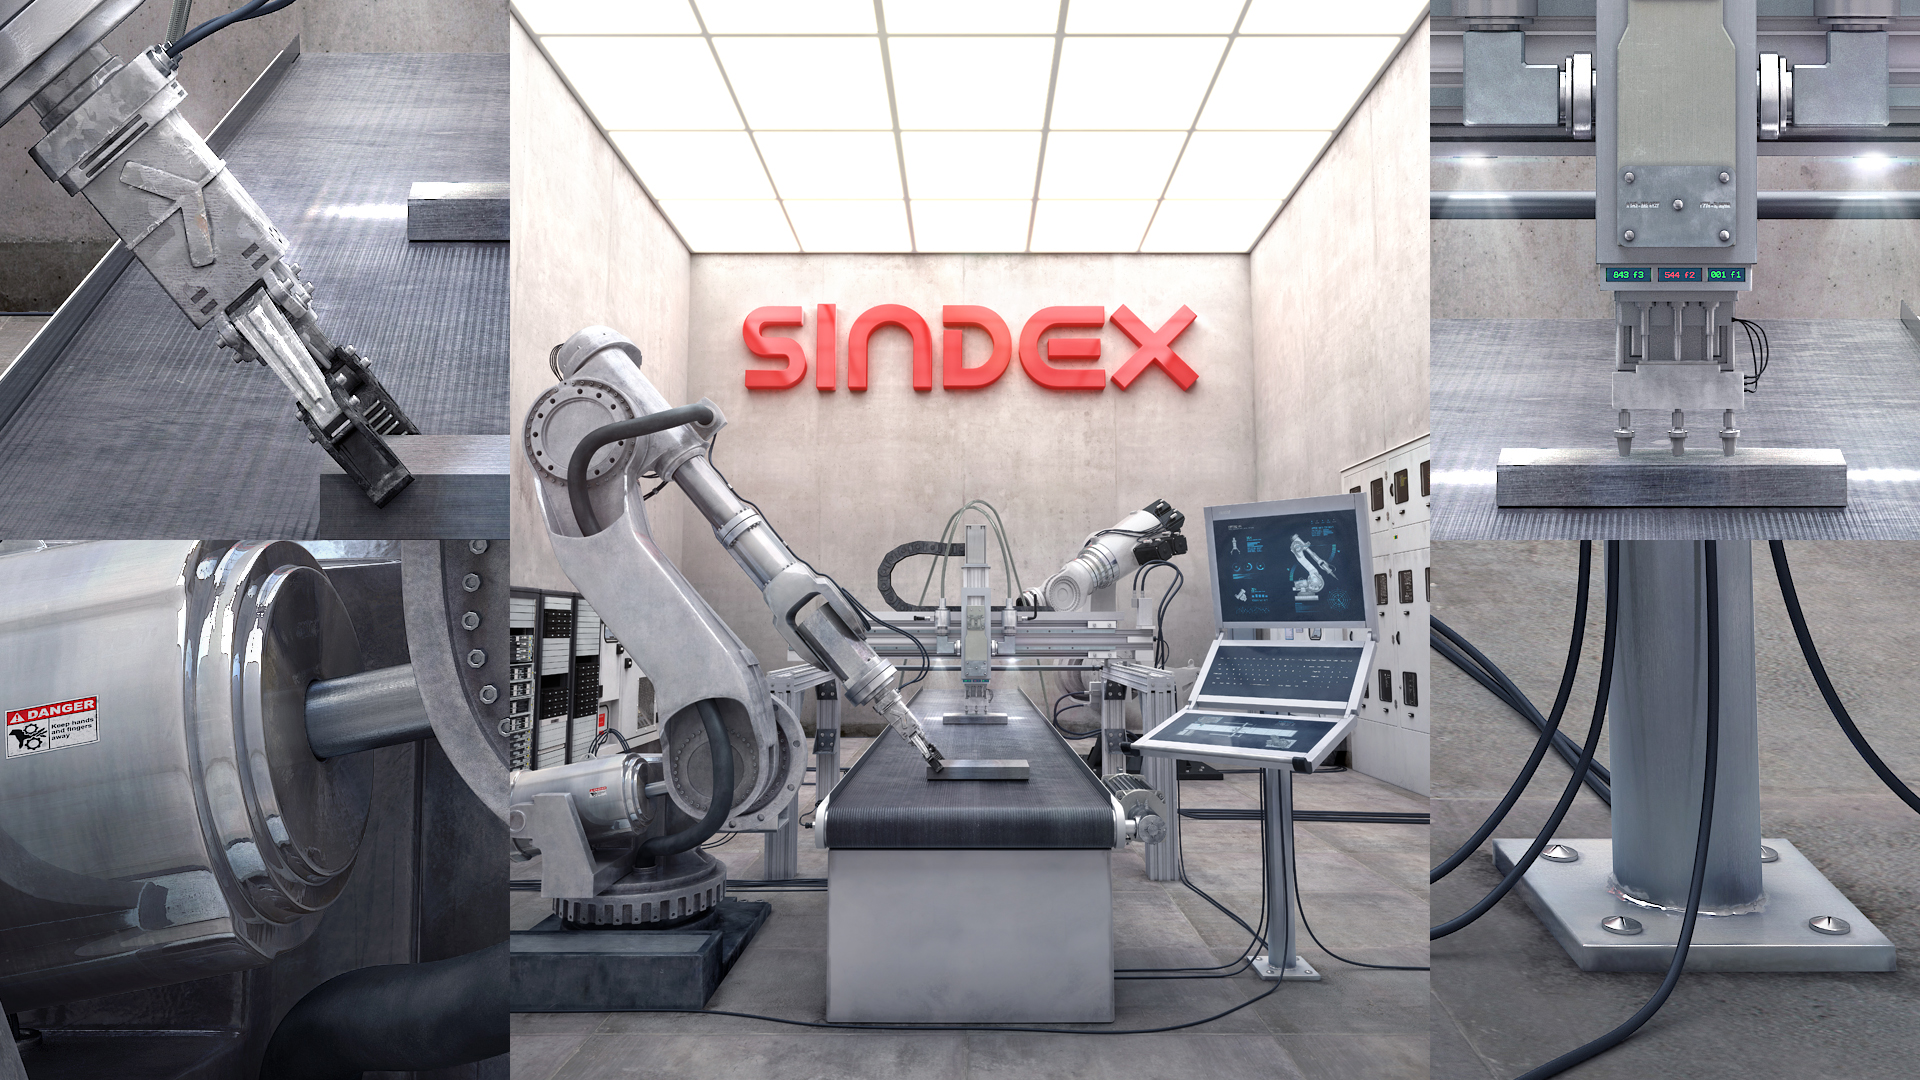 sindex_VisualCenter